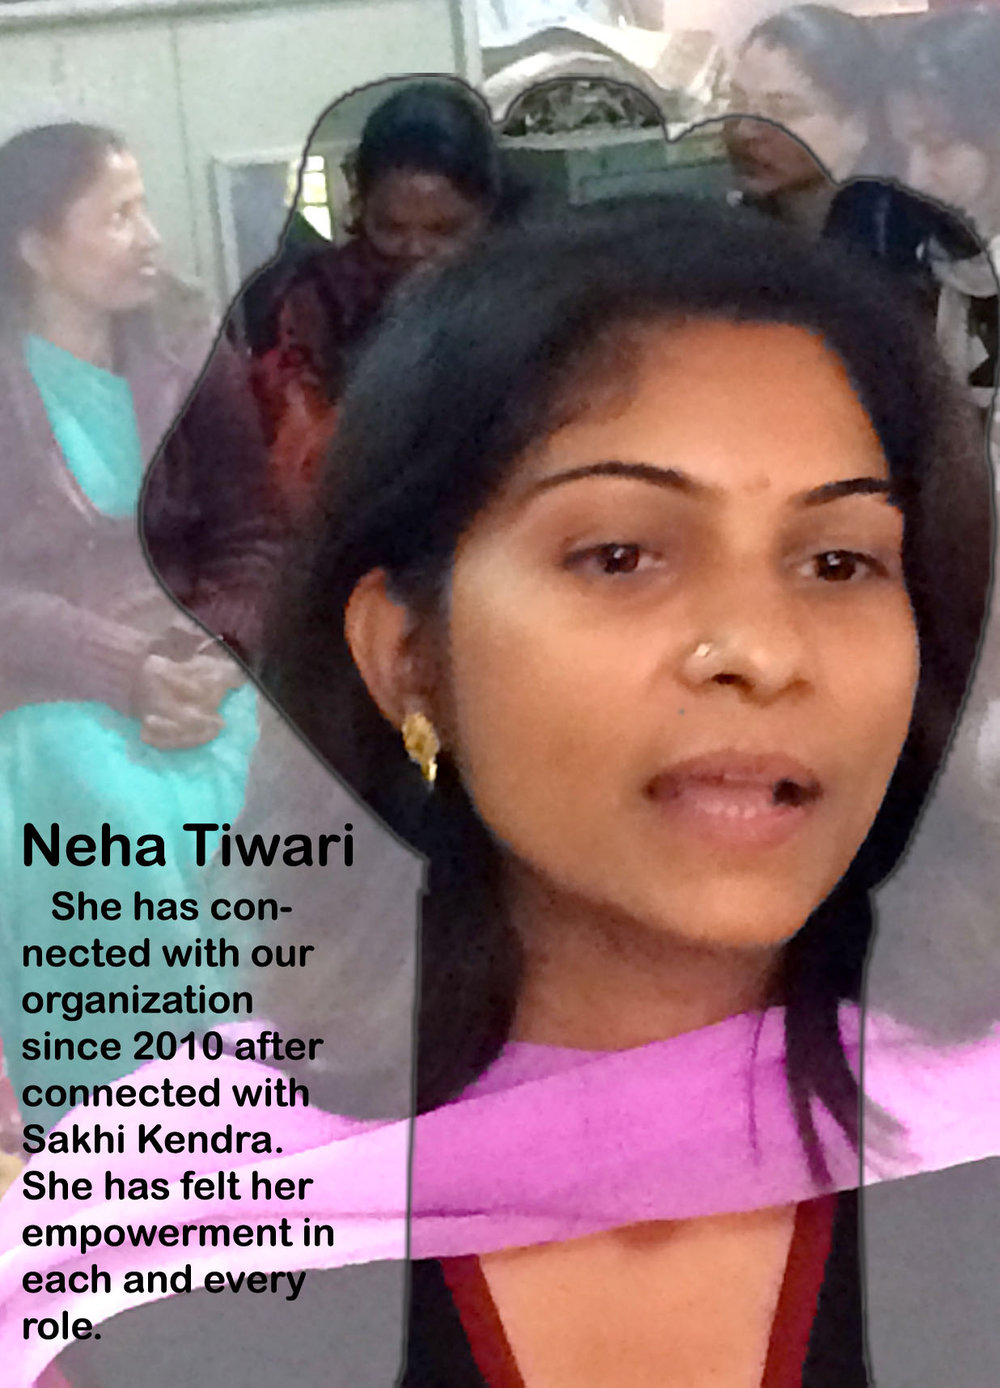 Neha tiwari women human right defender--.jpg